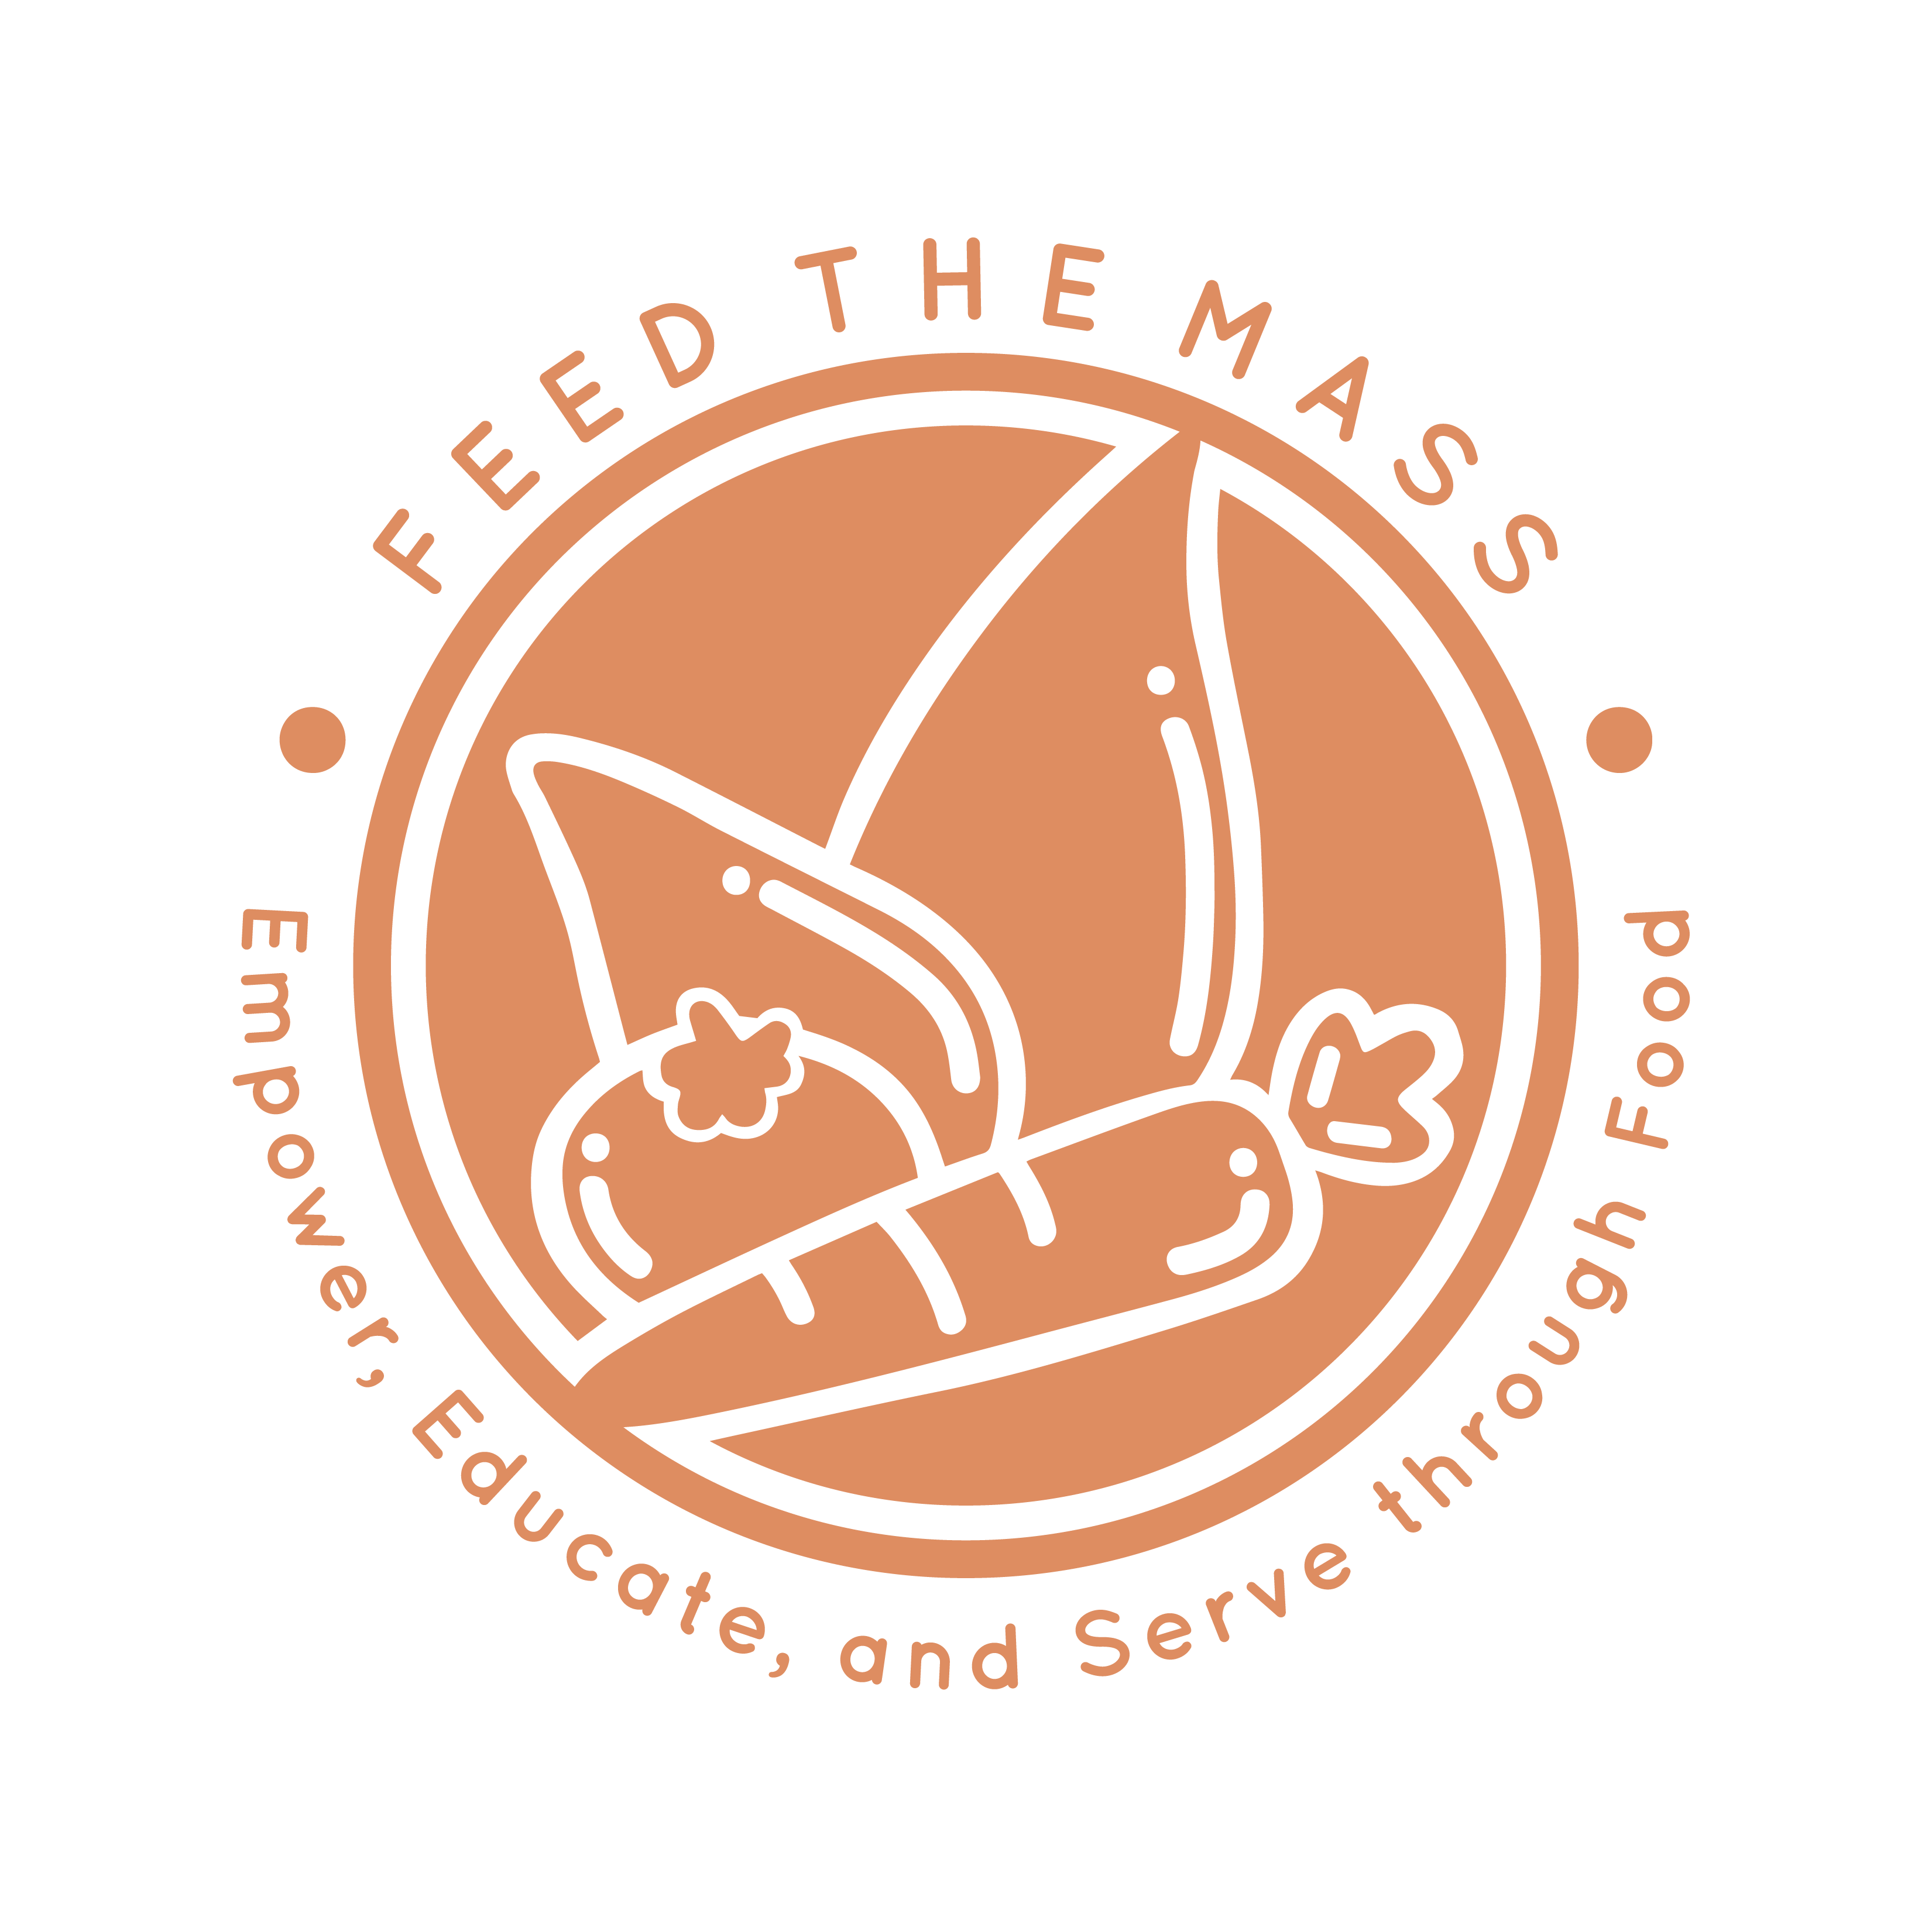 Feed The Mass